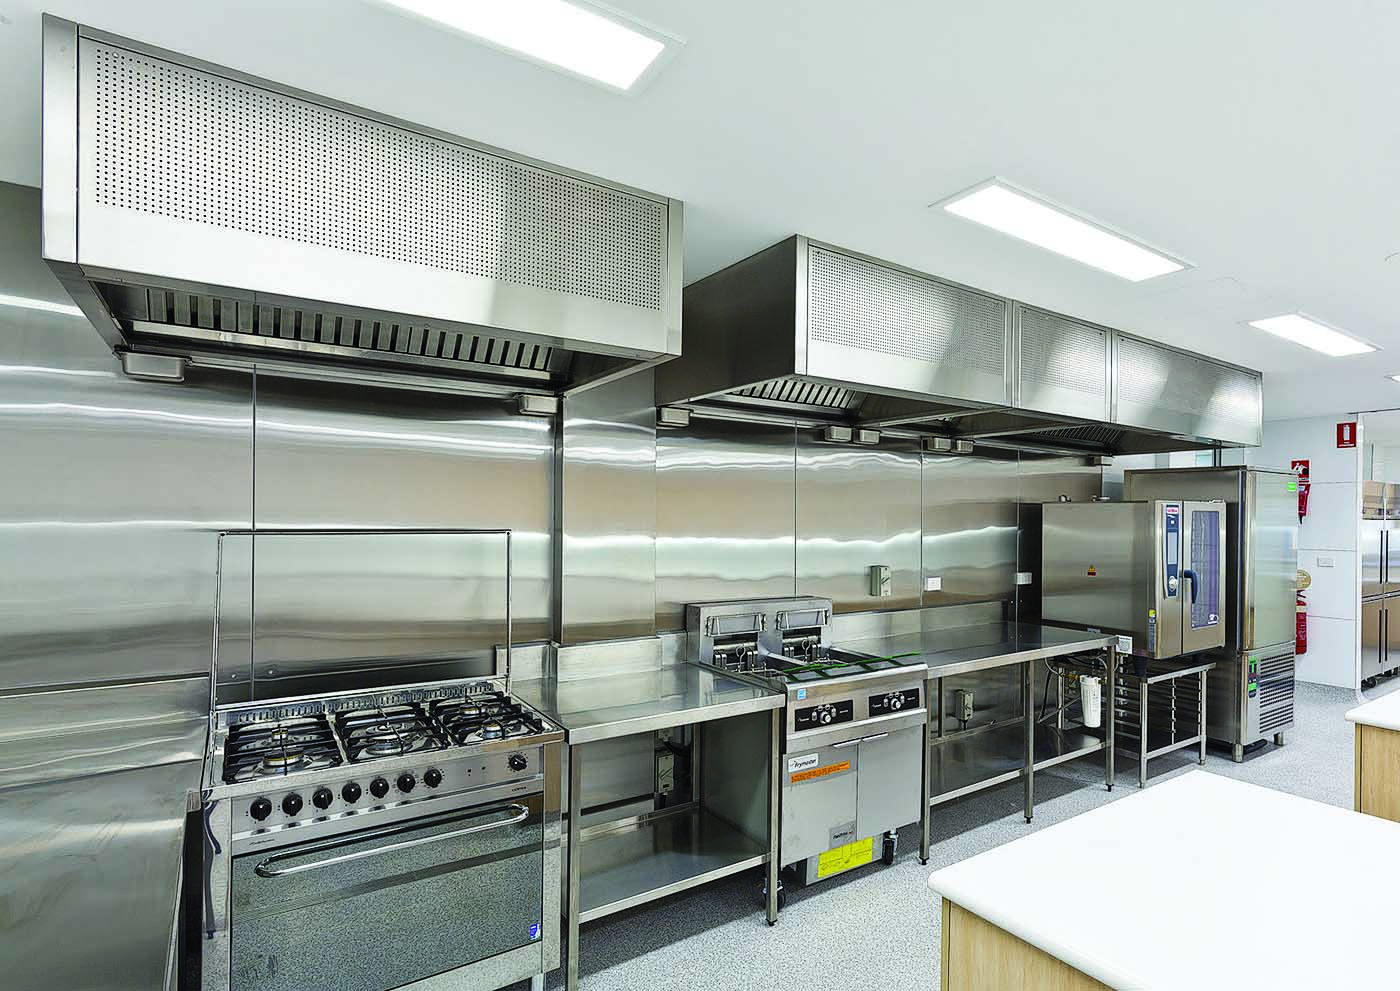 kitchen filter cart stainless steel top full commercial ventilation cleaning services lotus filters canopy exhaust air con duct sales